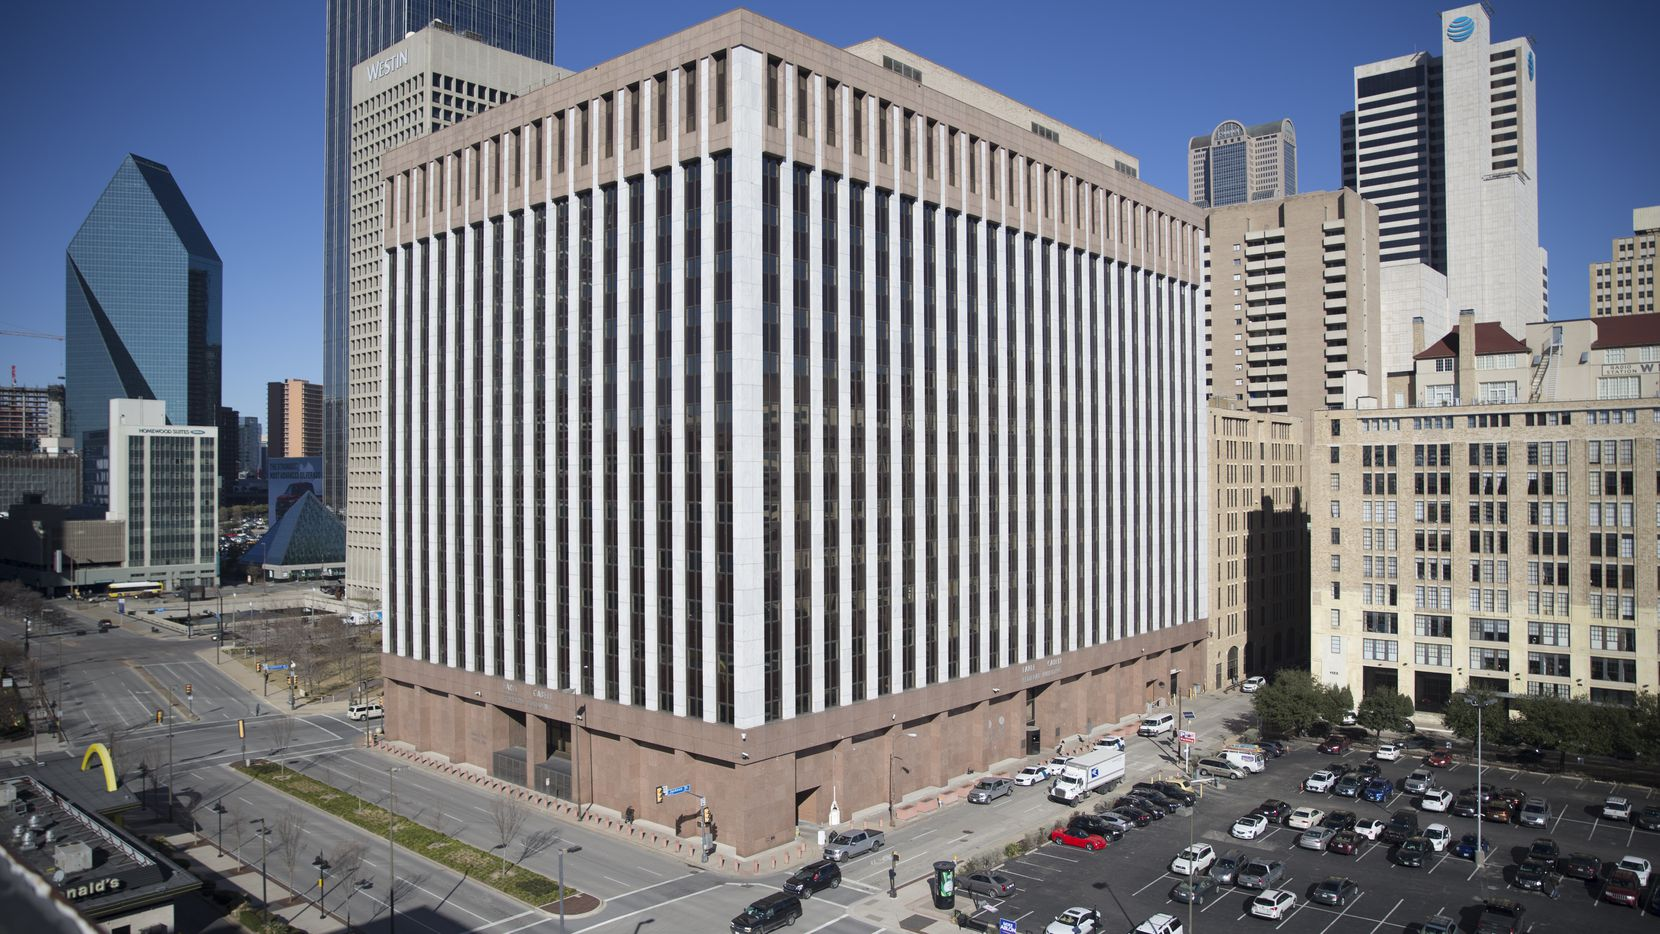 The Earle Cabell Federal Building, a U.S. federal courthouse that is home to the U.S. District Courts, in Dallas on Tuesday, January 23, 2019.